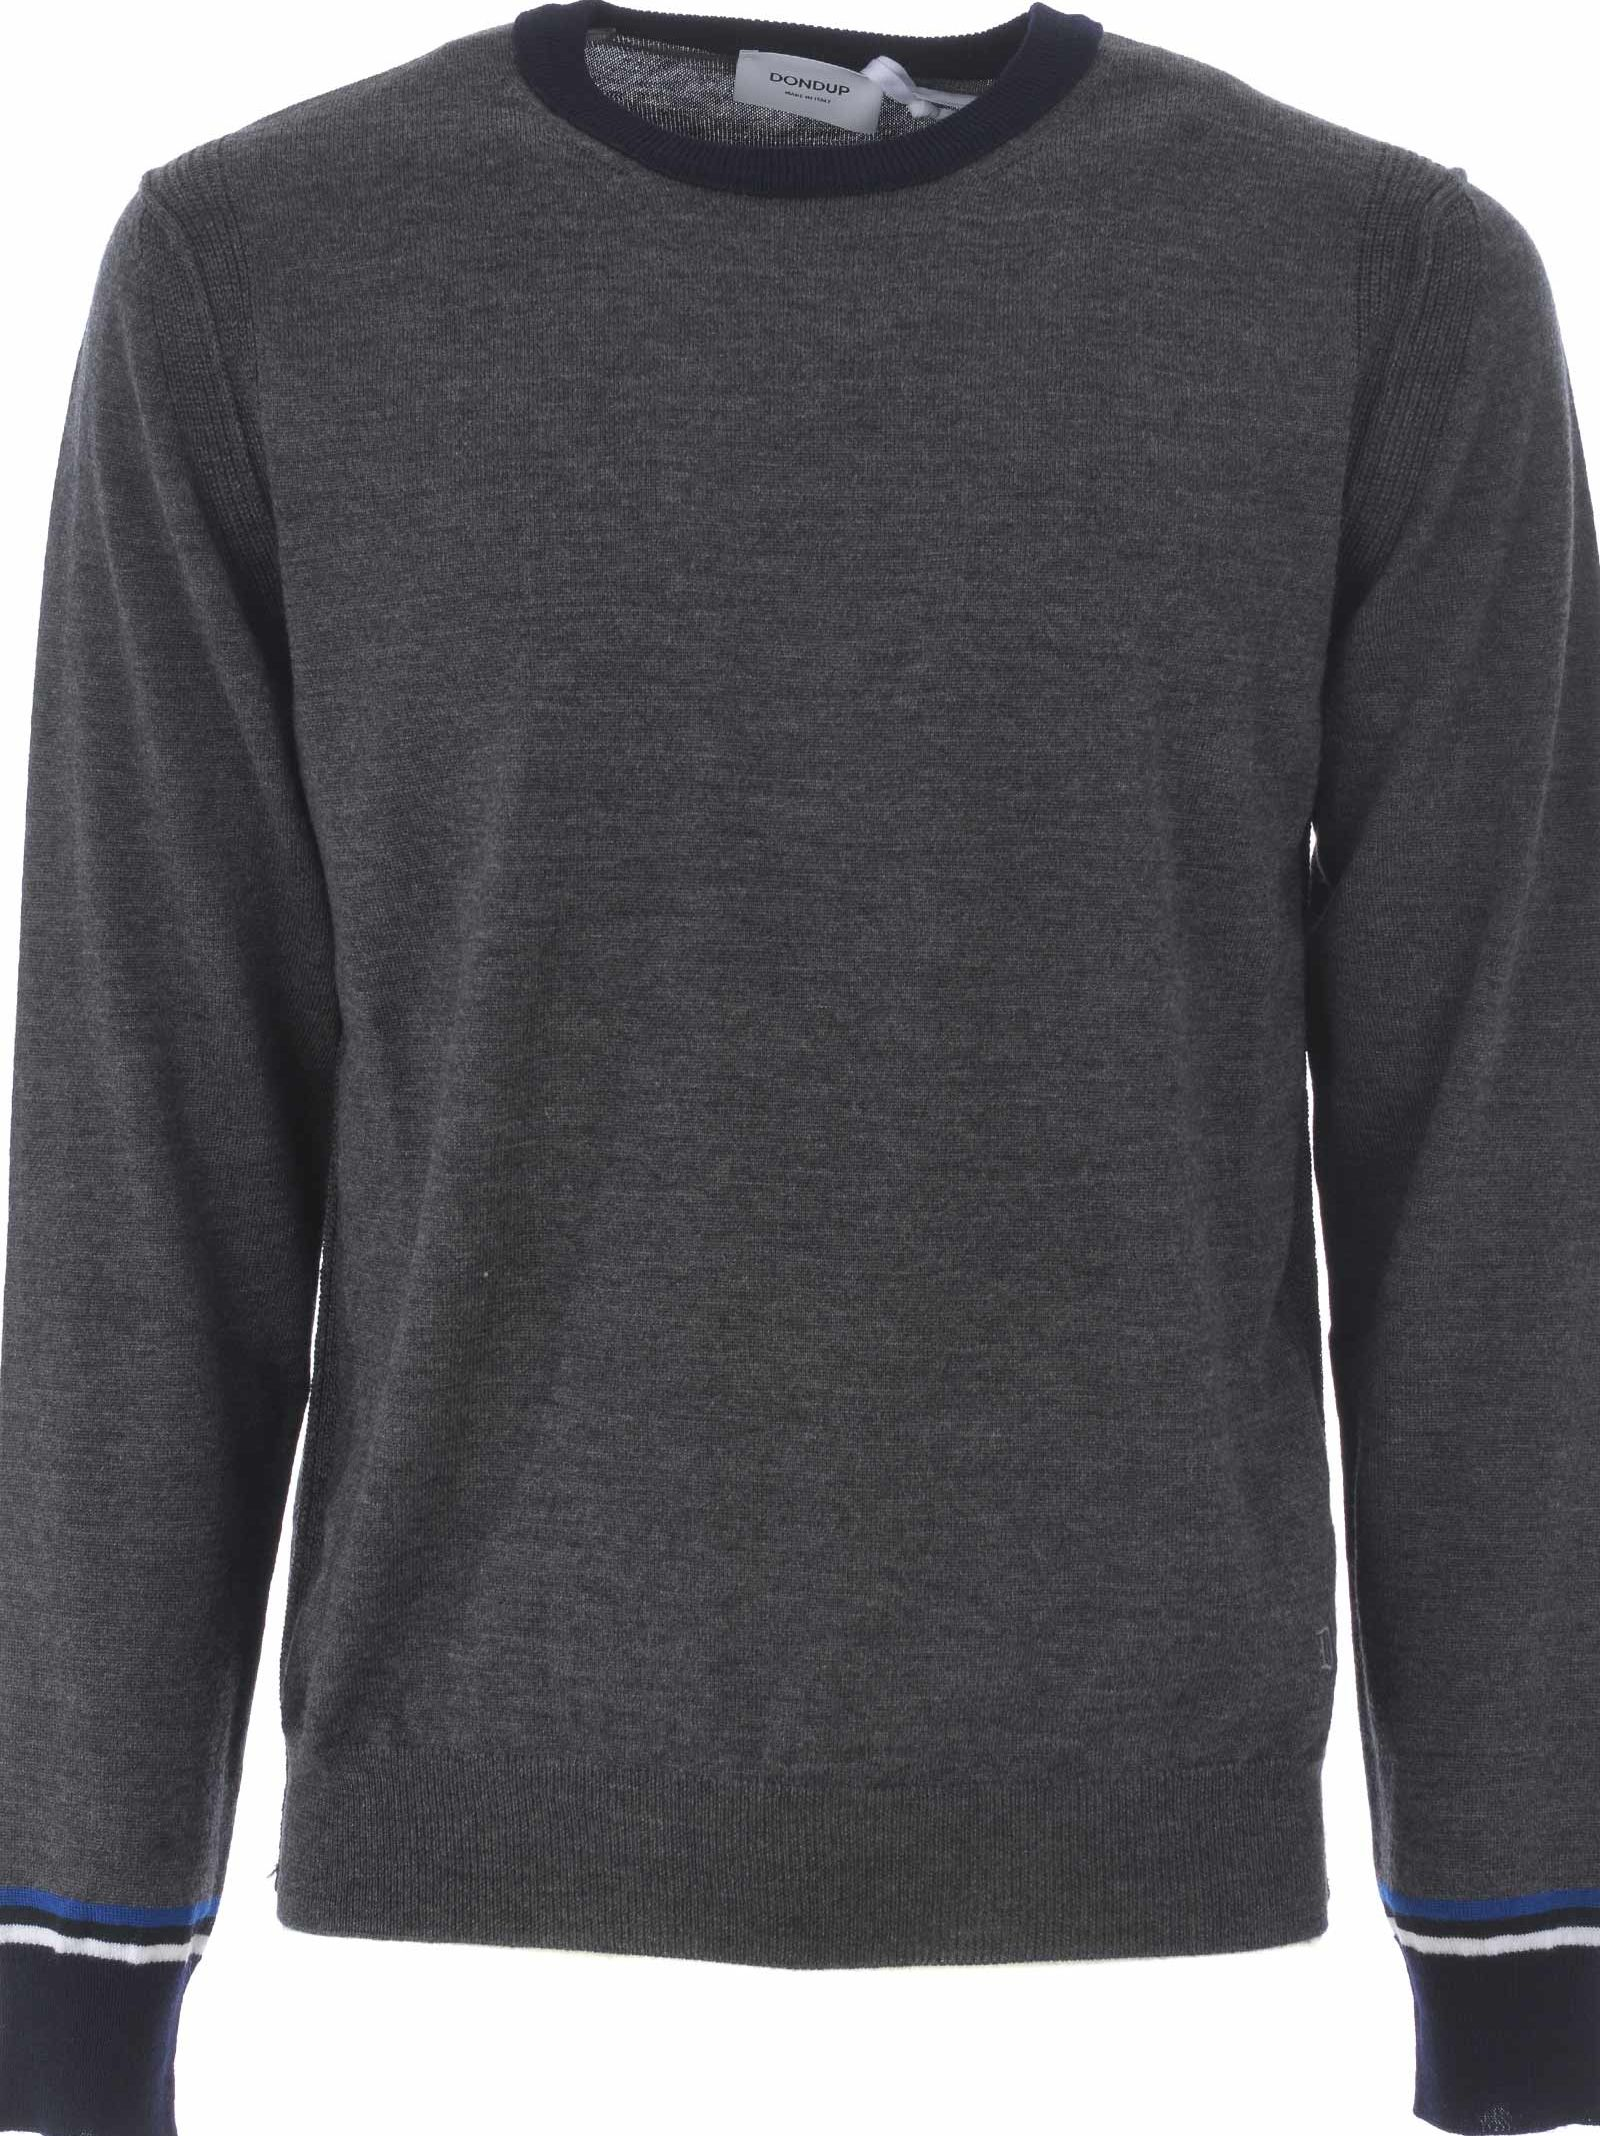 Dondup Contrast Sweater